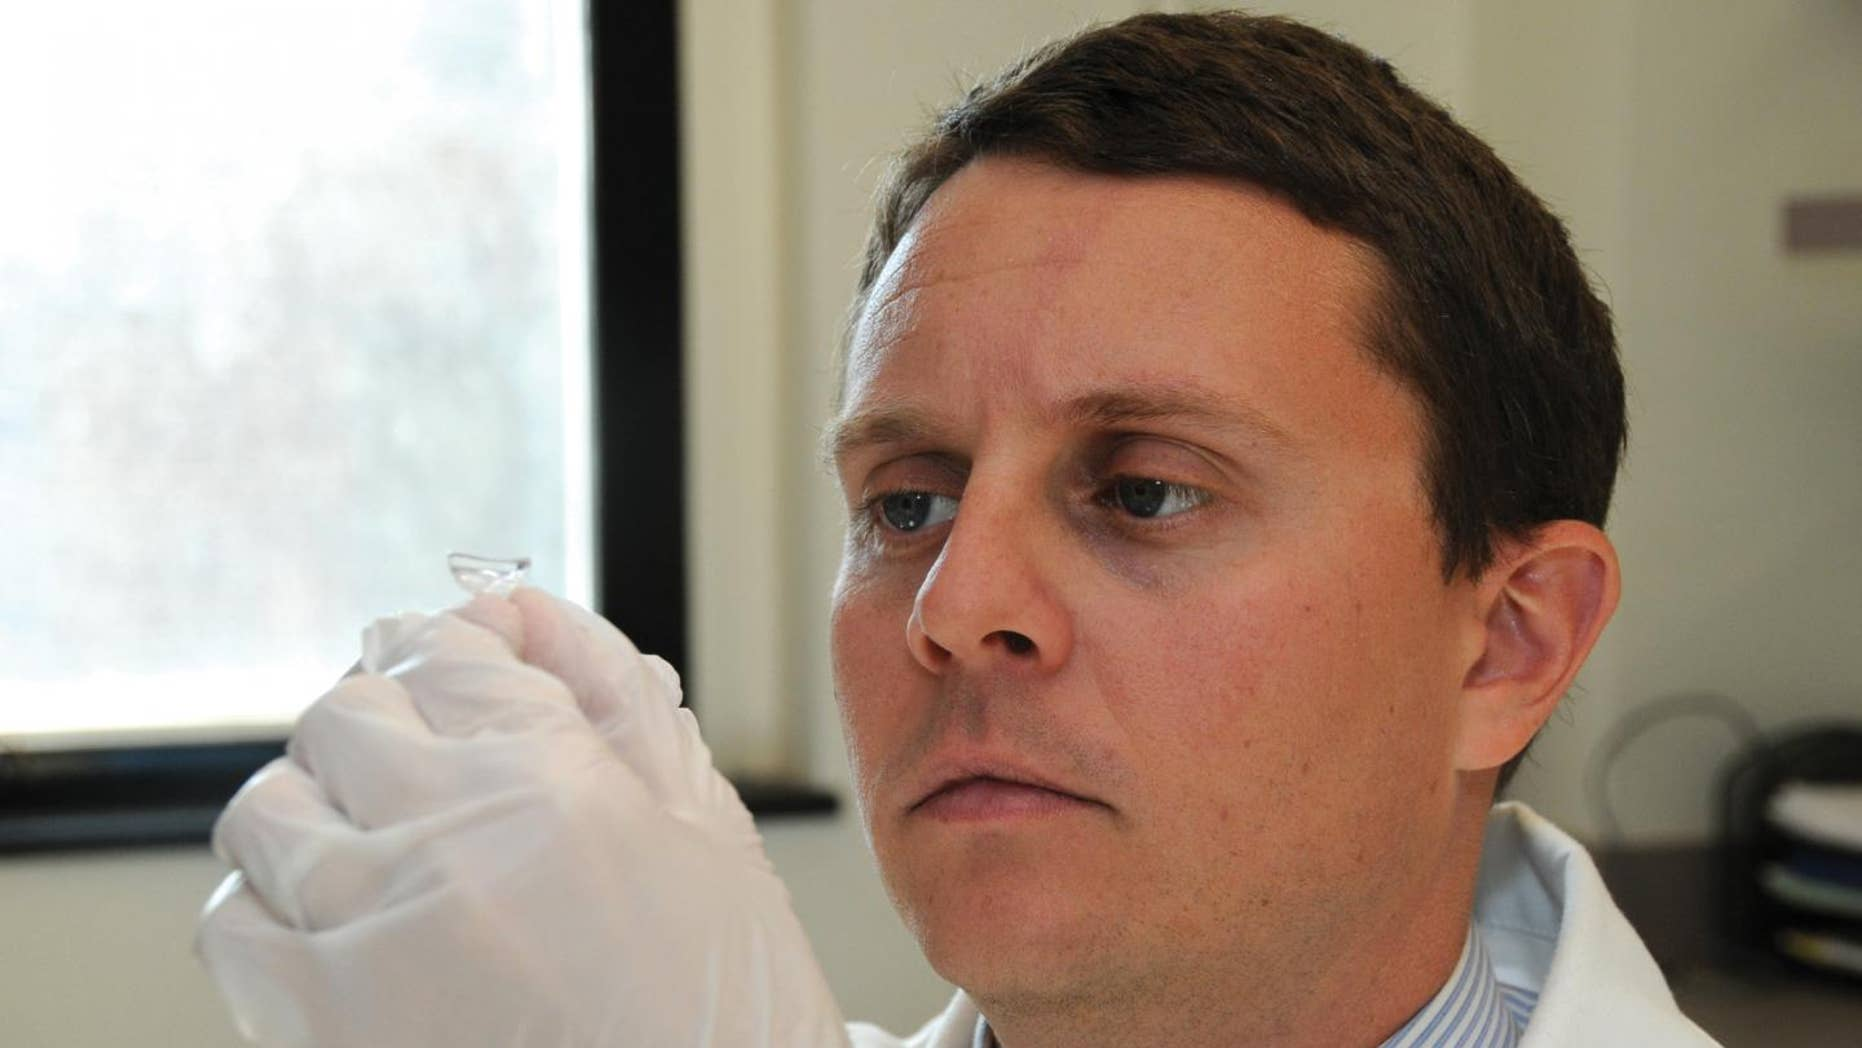 A contact lens designed to deliver medication gradually to the eye may improve outcomes for patients who struggle with imprecise, difficult to self-administer eye drops.